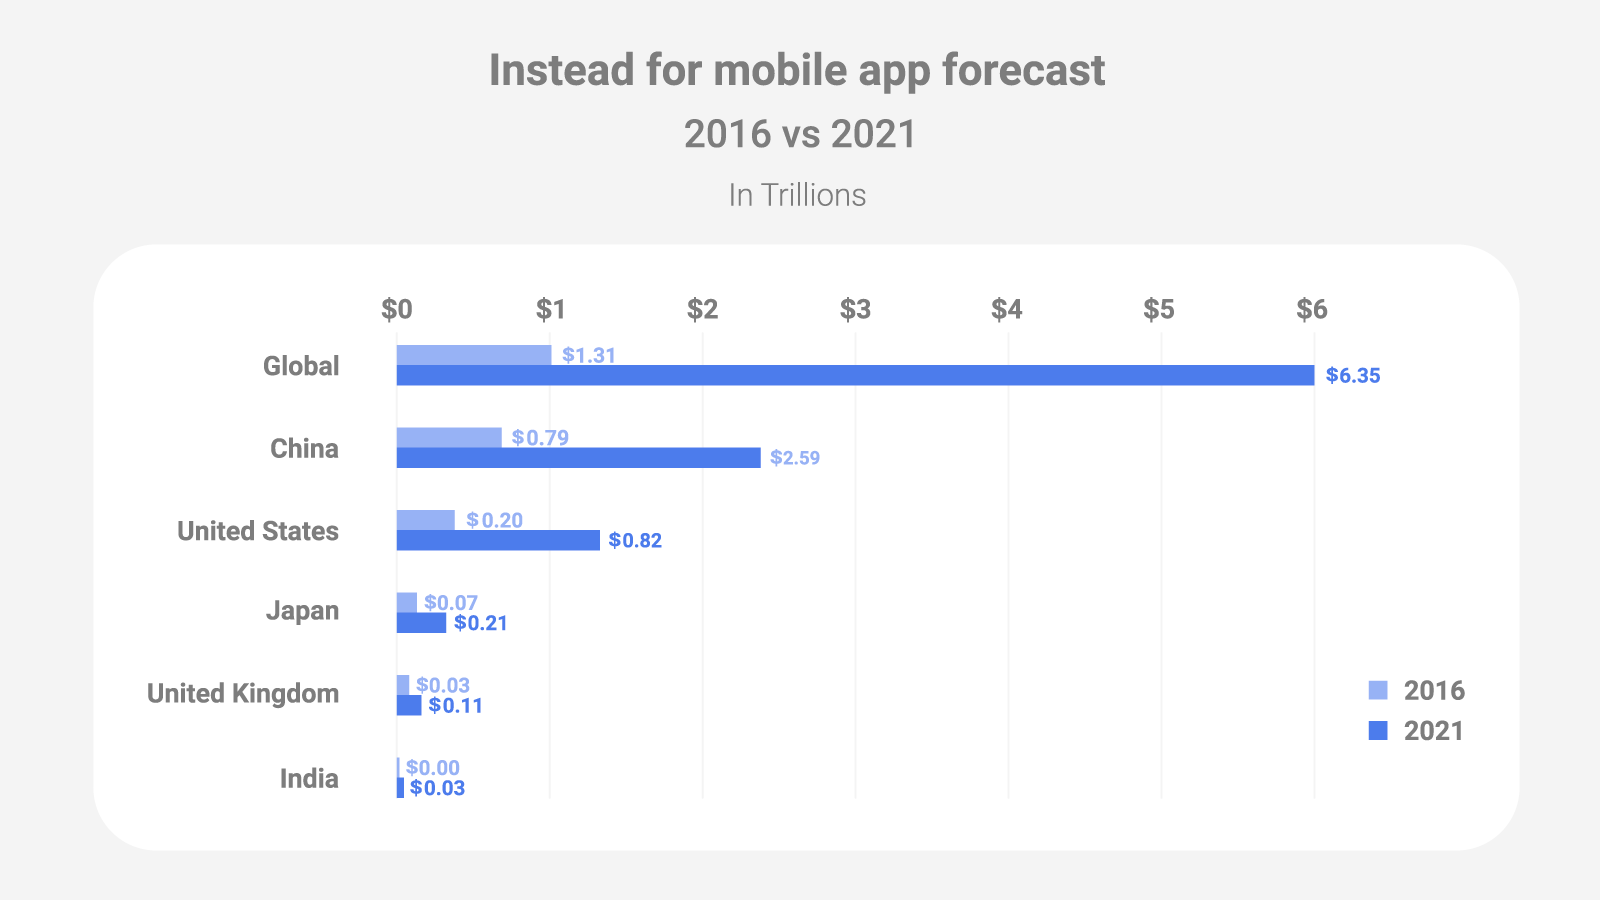 How Much Users Spend in Mobile Applications - 2016 vs 2021